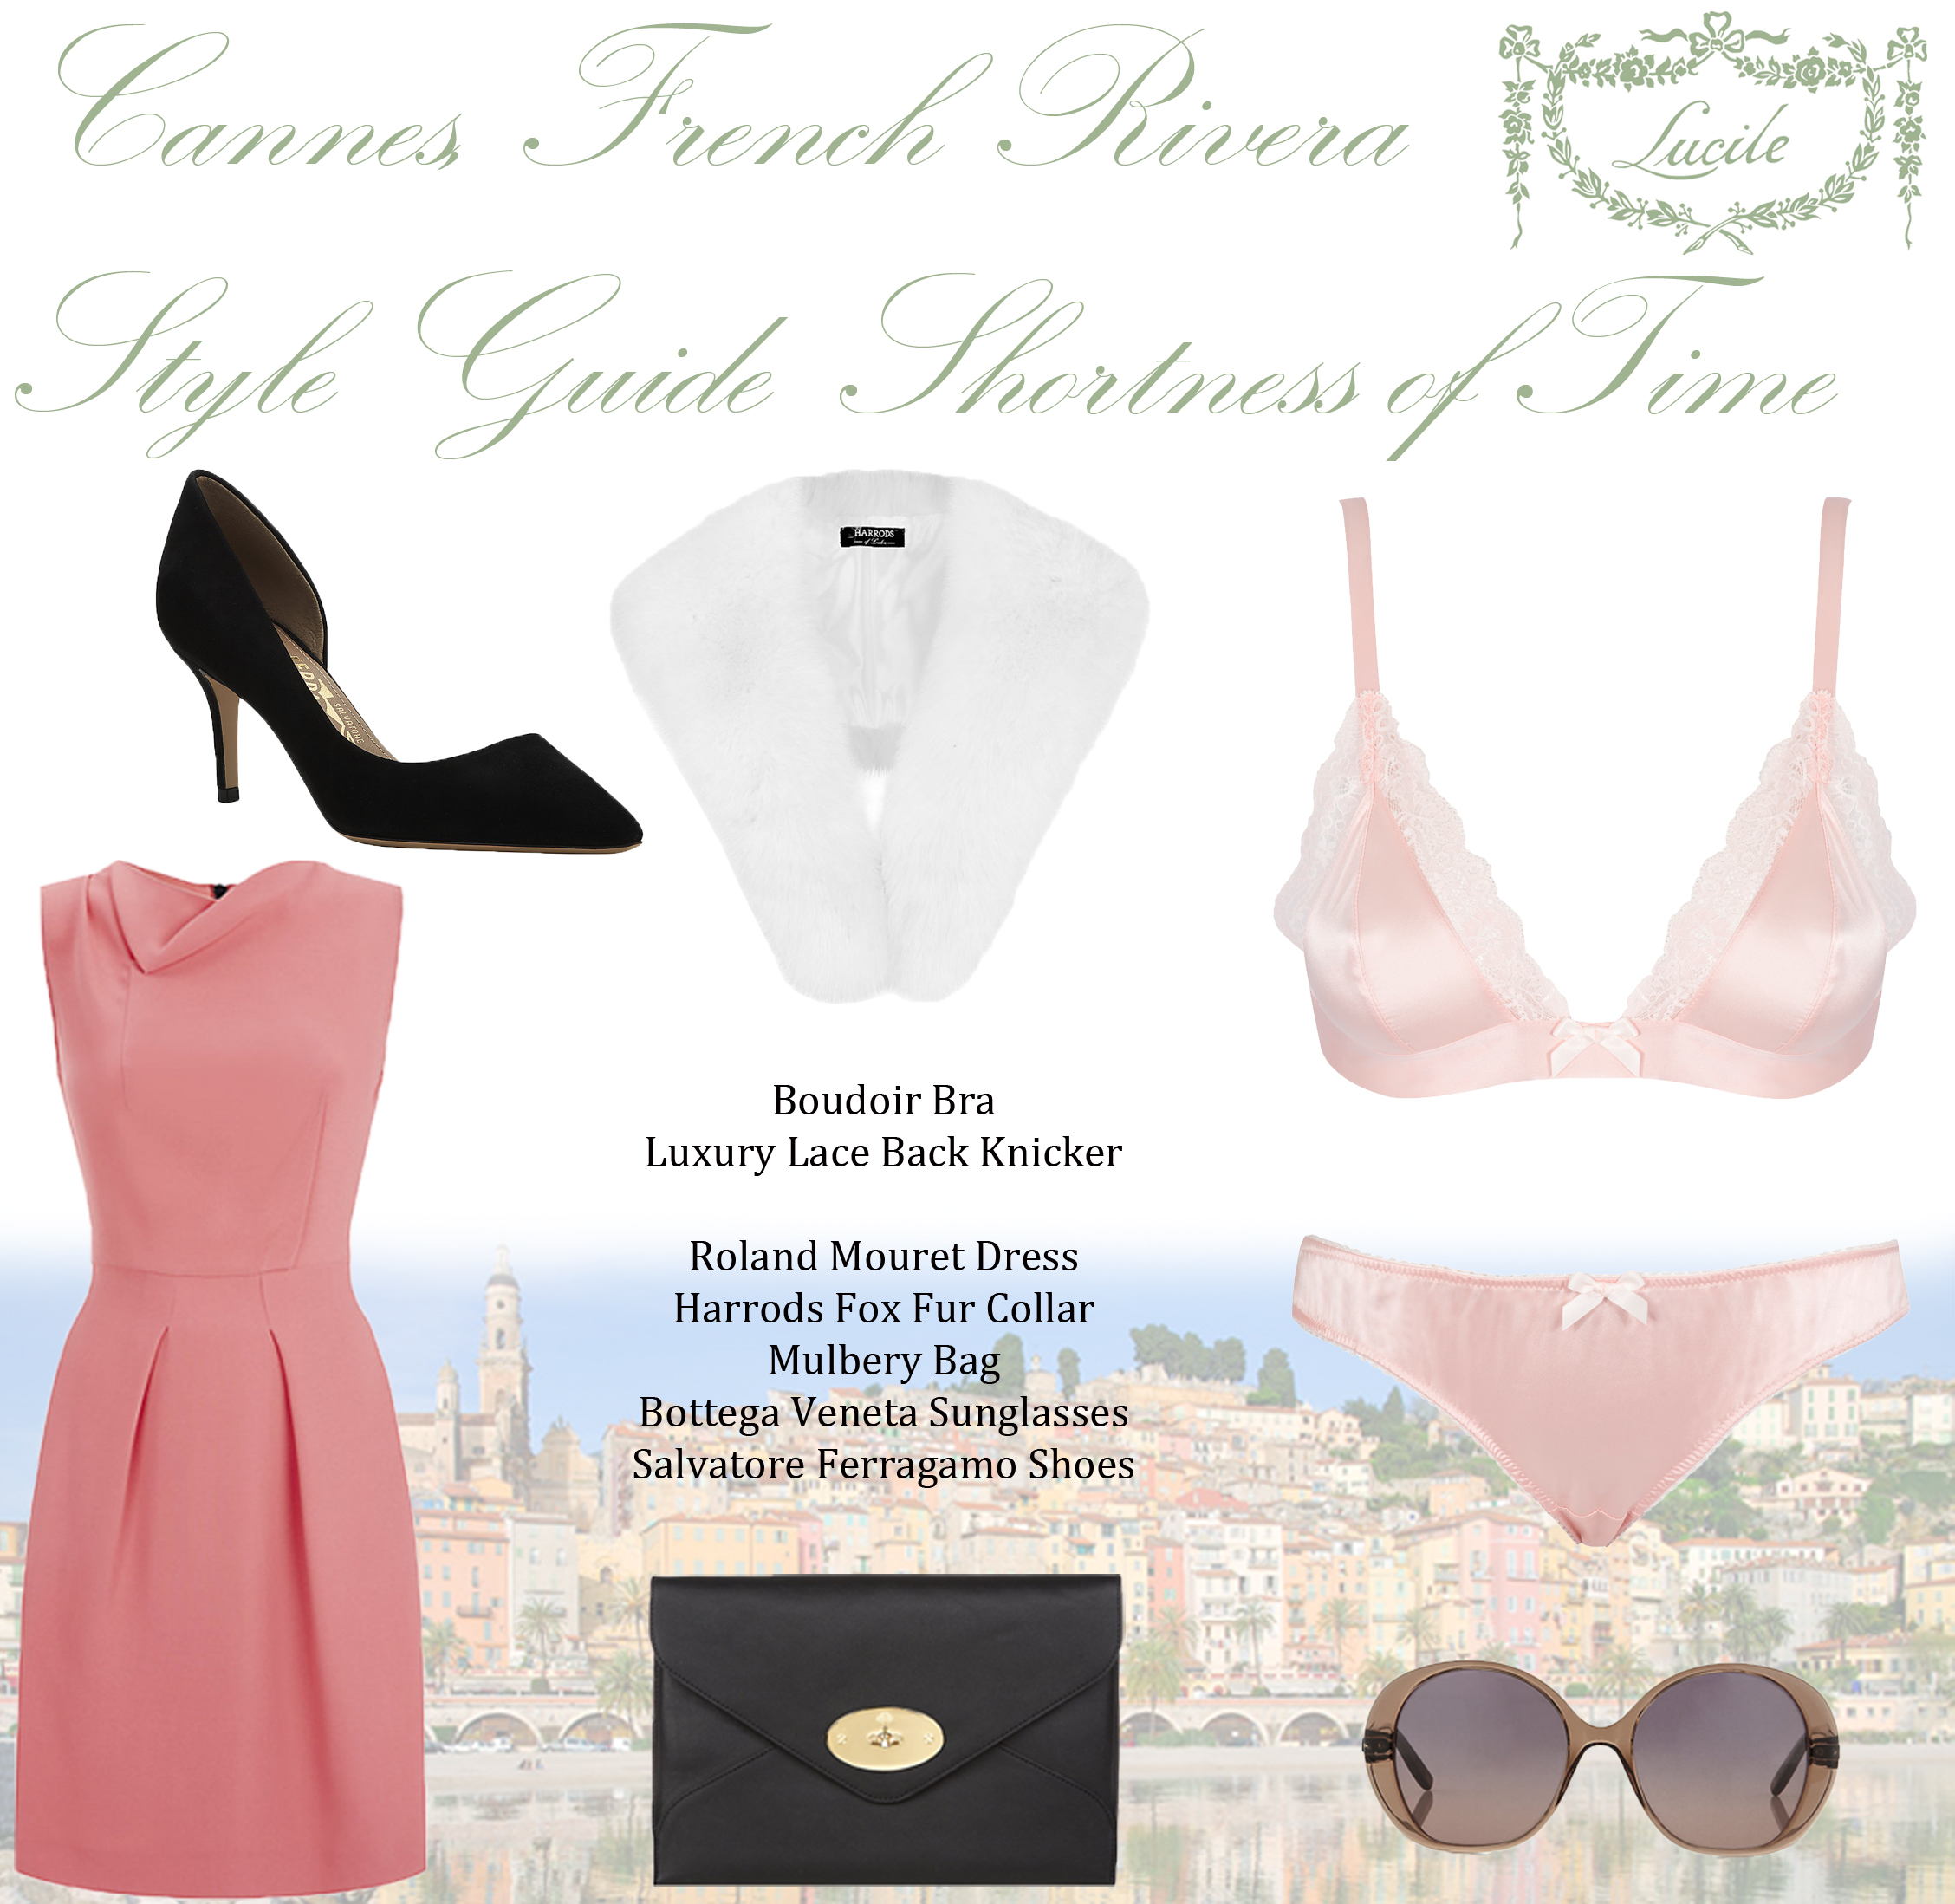 Cannes Style Guide